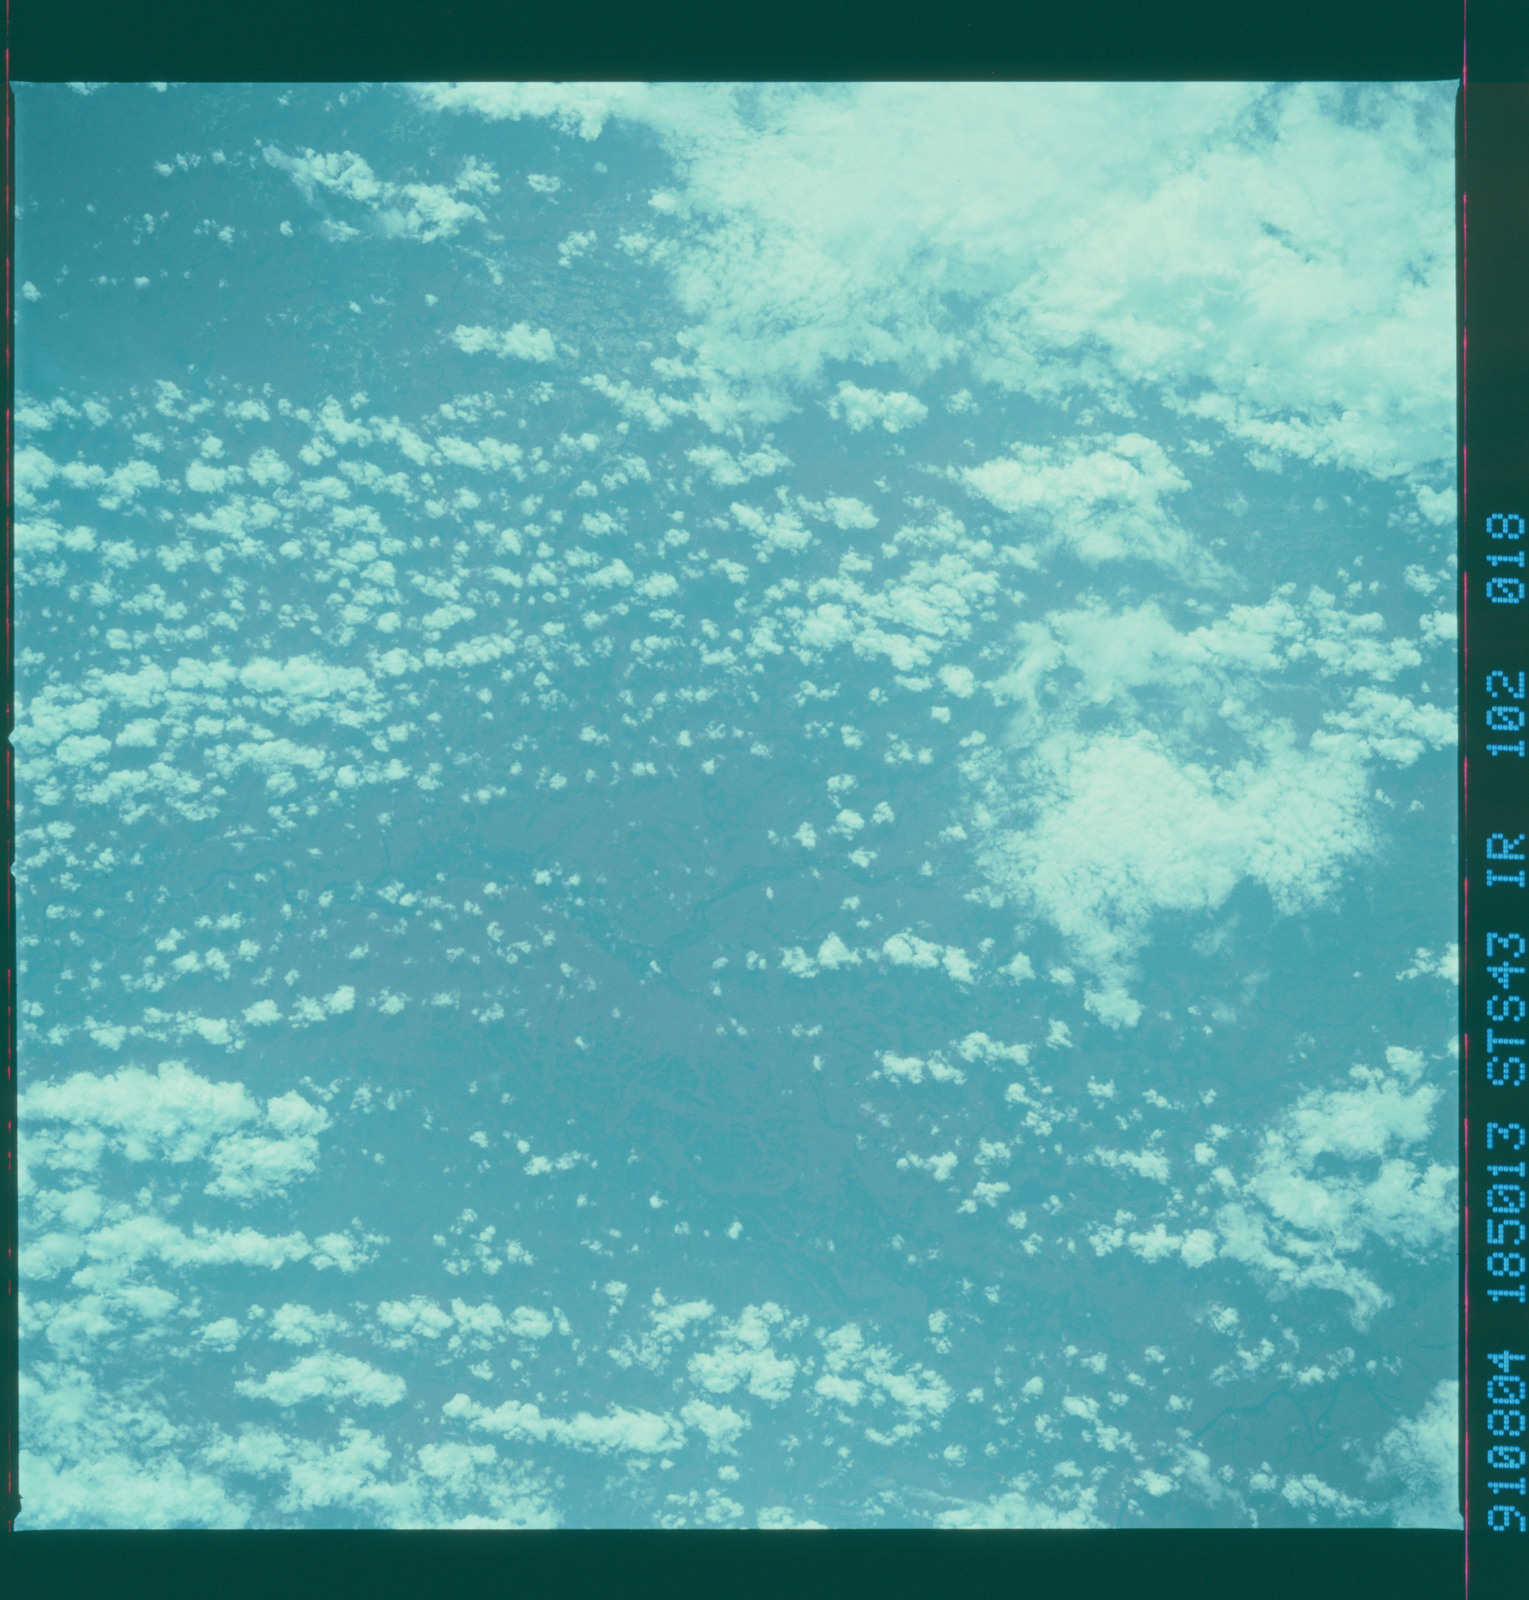 S43-102-018 - STS-043 - STS-43 earth observations